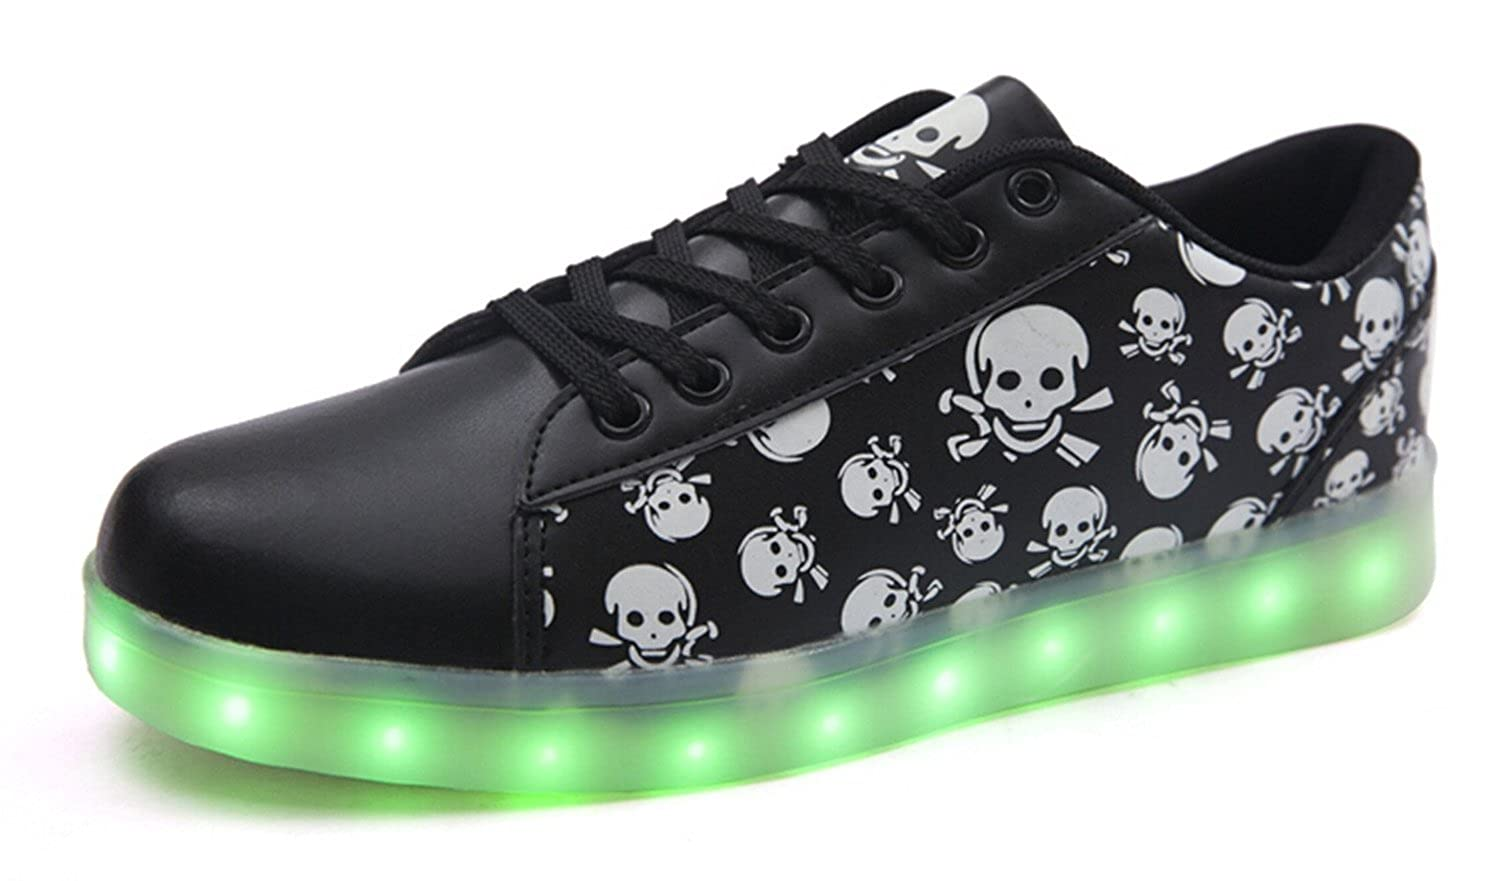 7 Colors LED Luminous Unisex Men & Women Sneakers USB Charging Light Colorful Glowing Leisure Flat Shoes Skull11 D(M) US